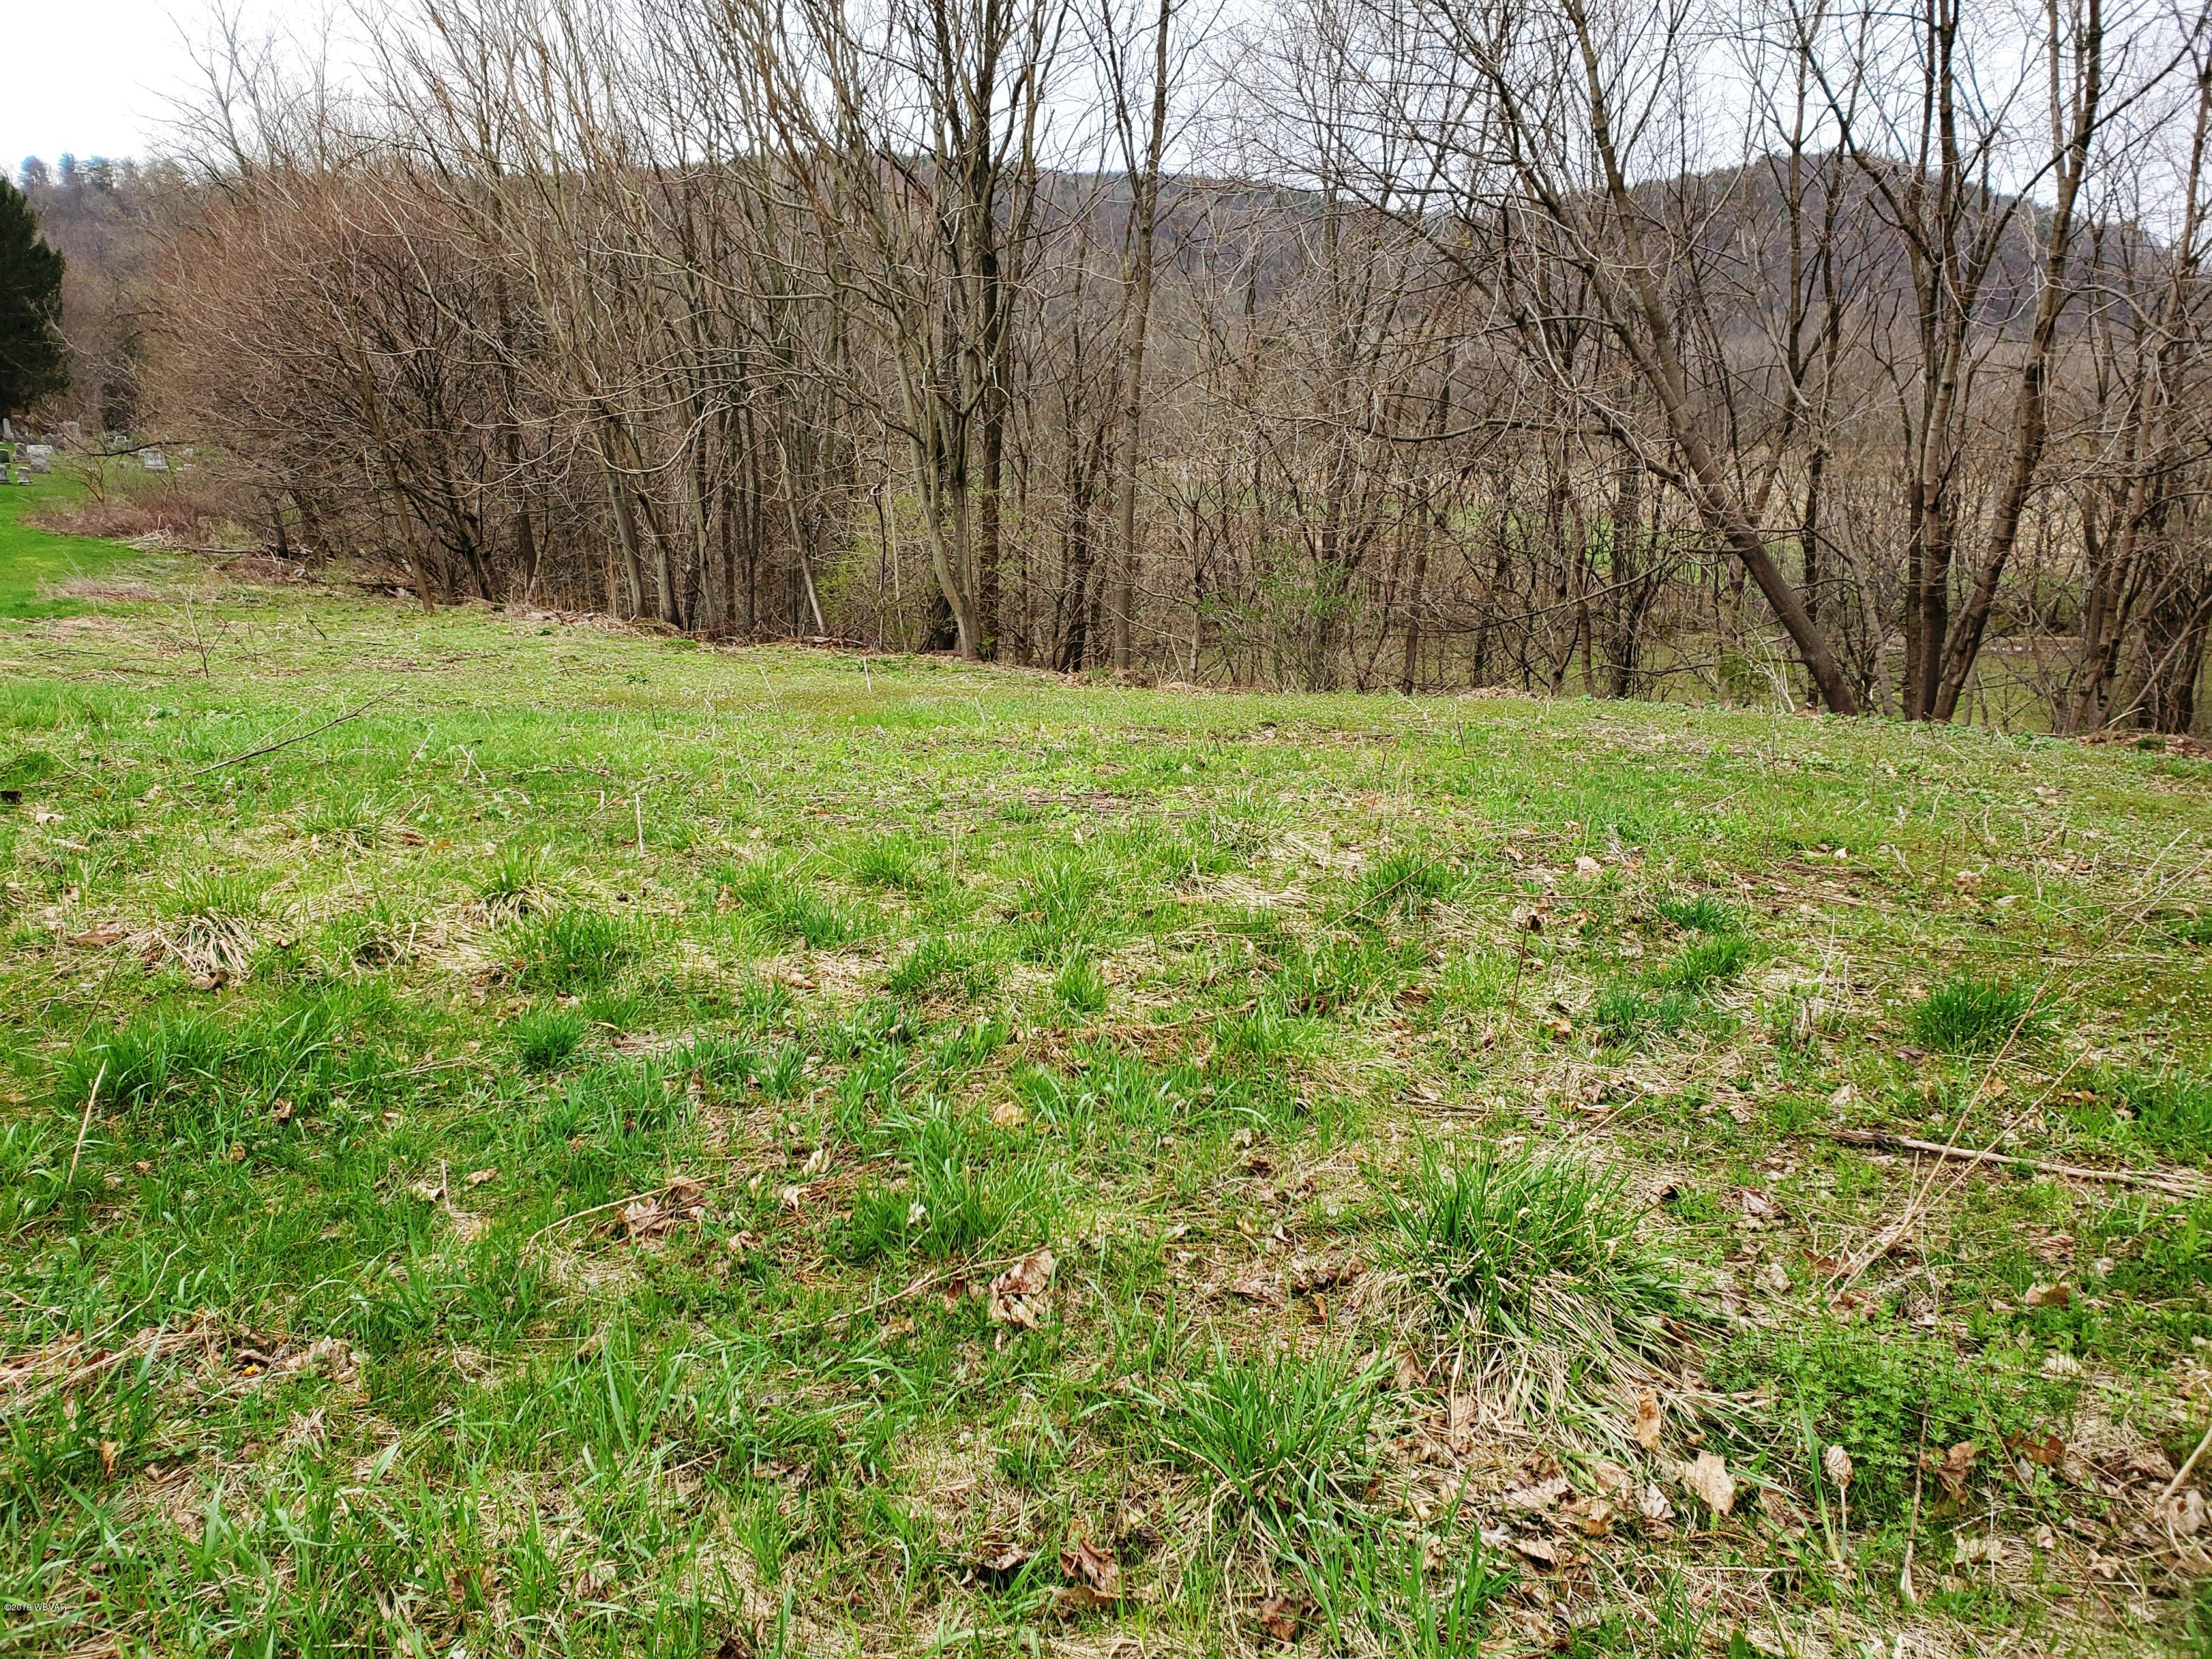 2329 ROUTE 87 HIGHWAY,Montoursville,PA 17754,Land,ROUTE 87,WB-87023